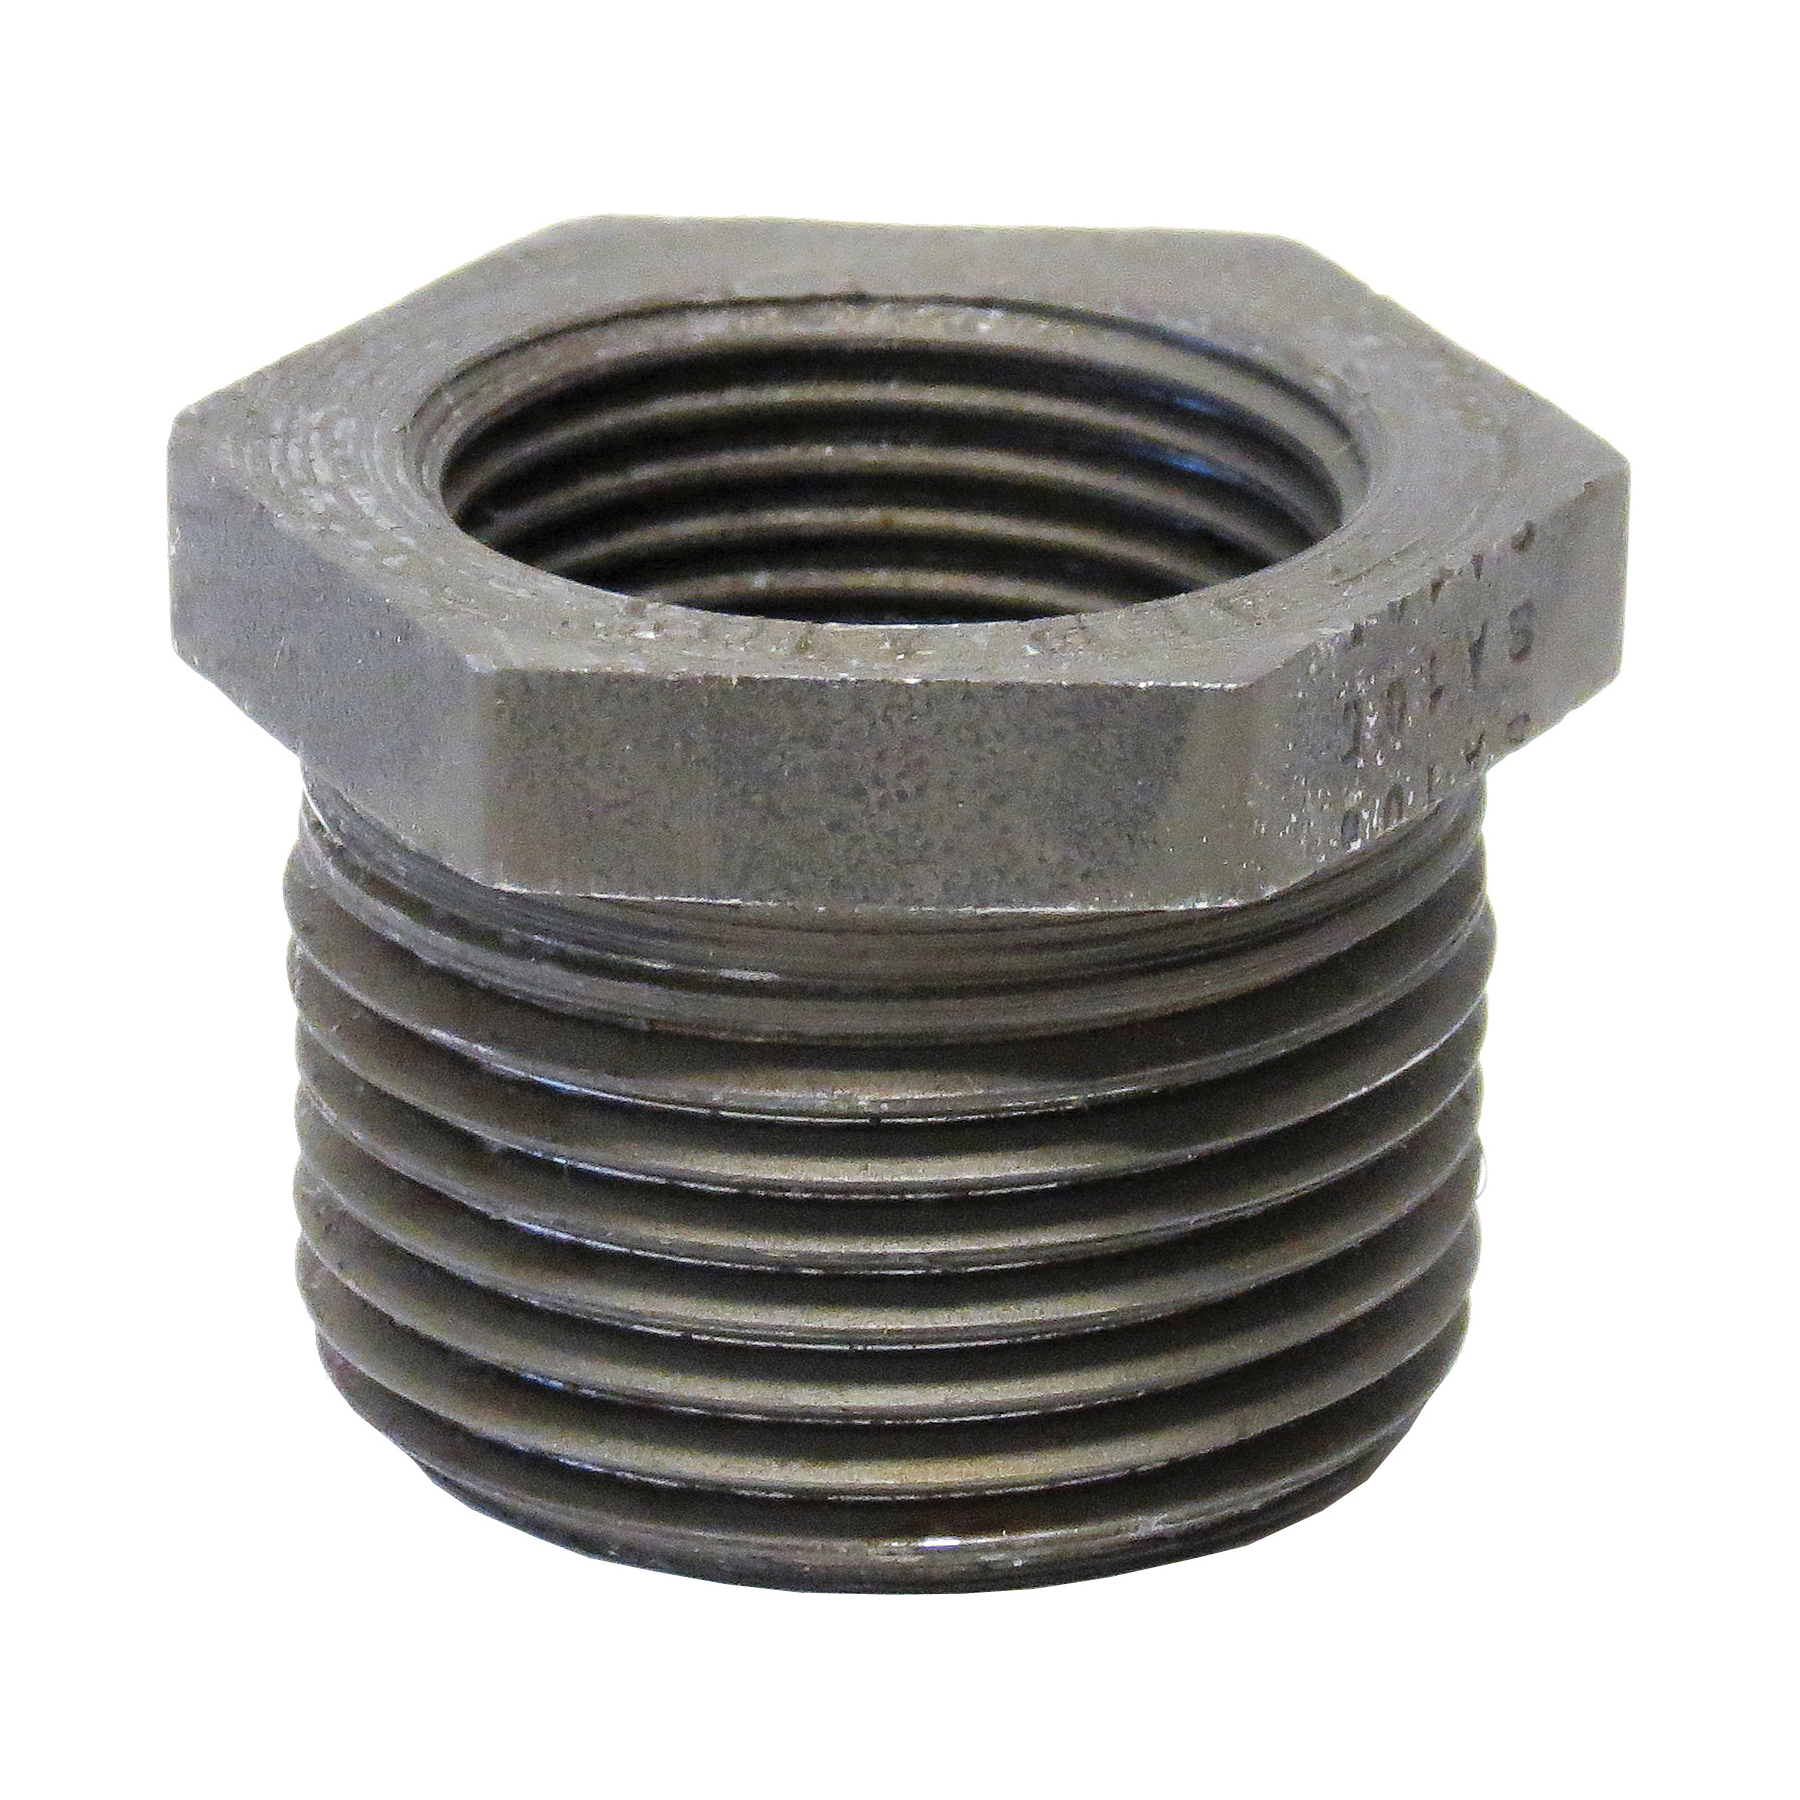 Anvil® 0361331606 FIG 2139 Hex Head Pipe Bushing, 1/4 x 1-1/4 in Nominal, MNPT x FNPT End Style, 3000 lb, Steel, Black Oxide, Domestic